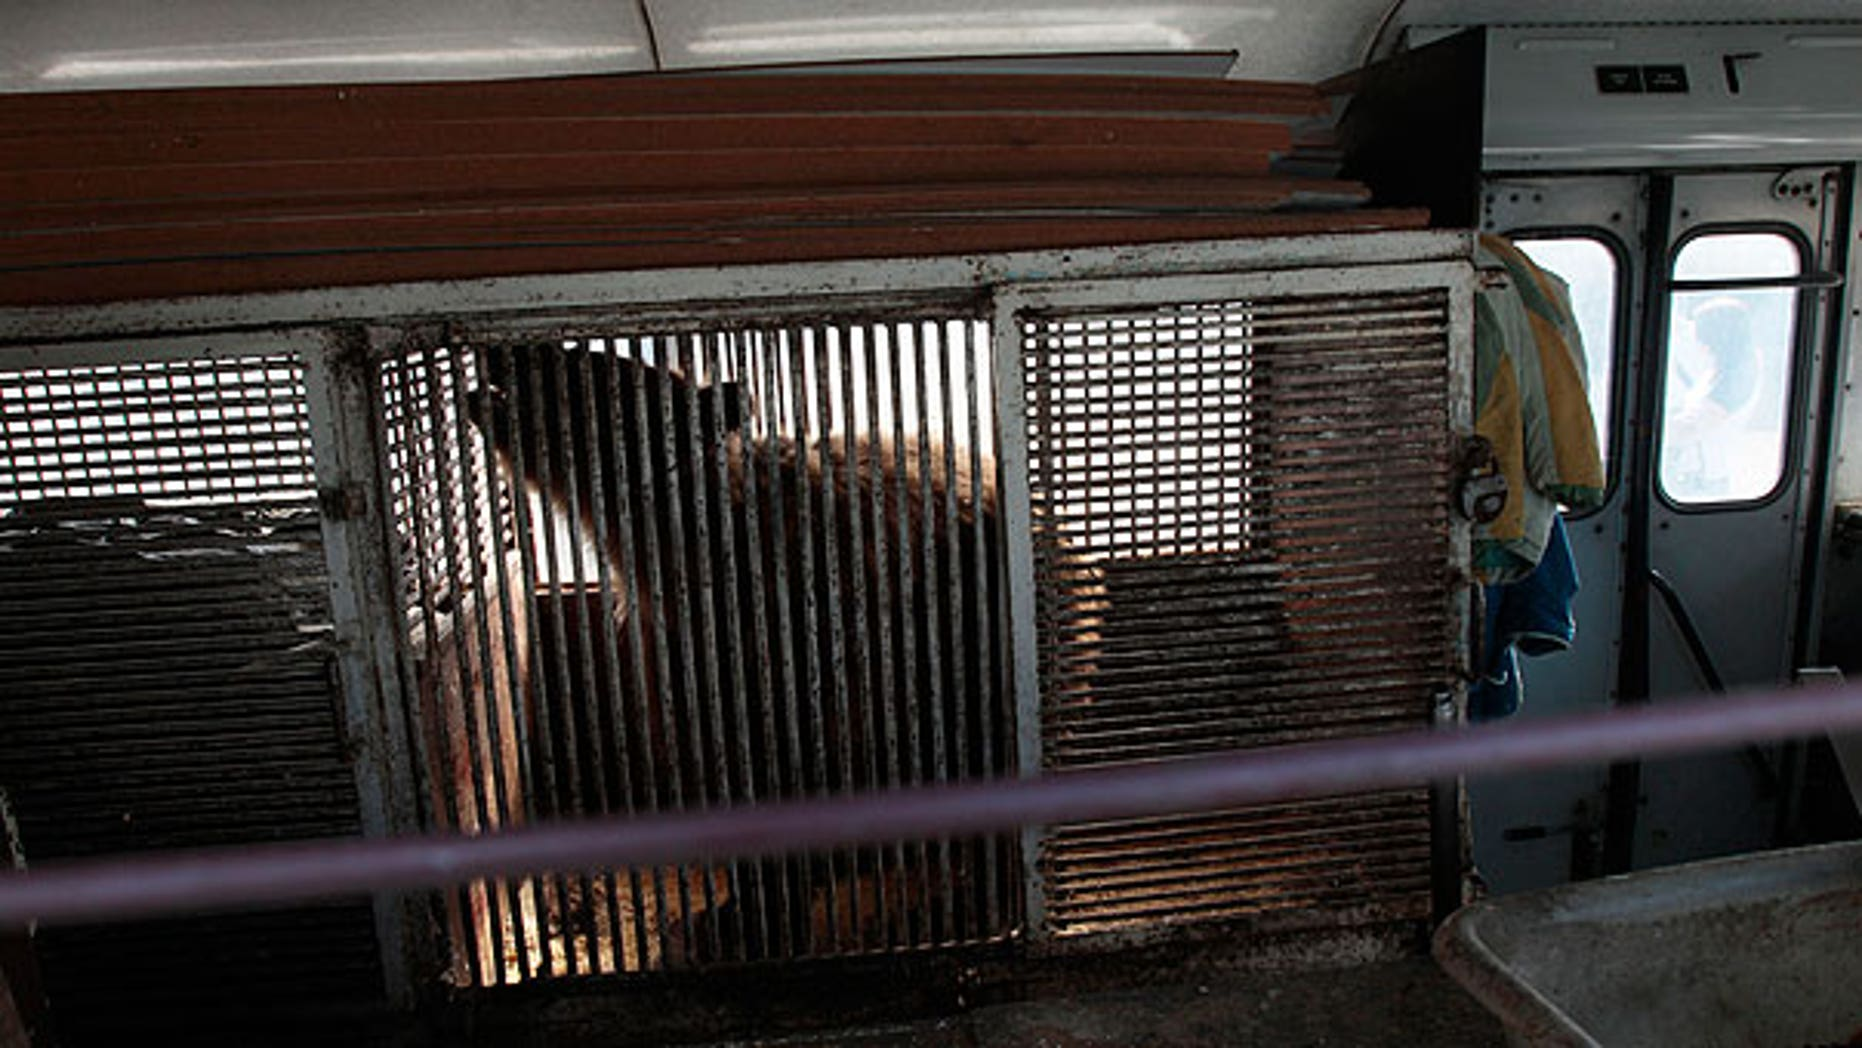 In this photo made Thursday, July 14, 2011, Katya, a 36-year-old bear, moves uneasily in her cage placed inside a bus that stands at a parking lot in St.Petersburg, Russia.